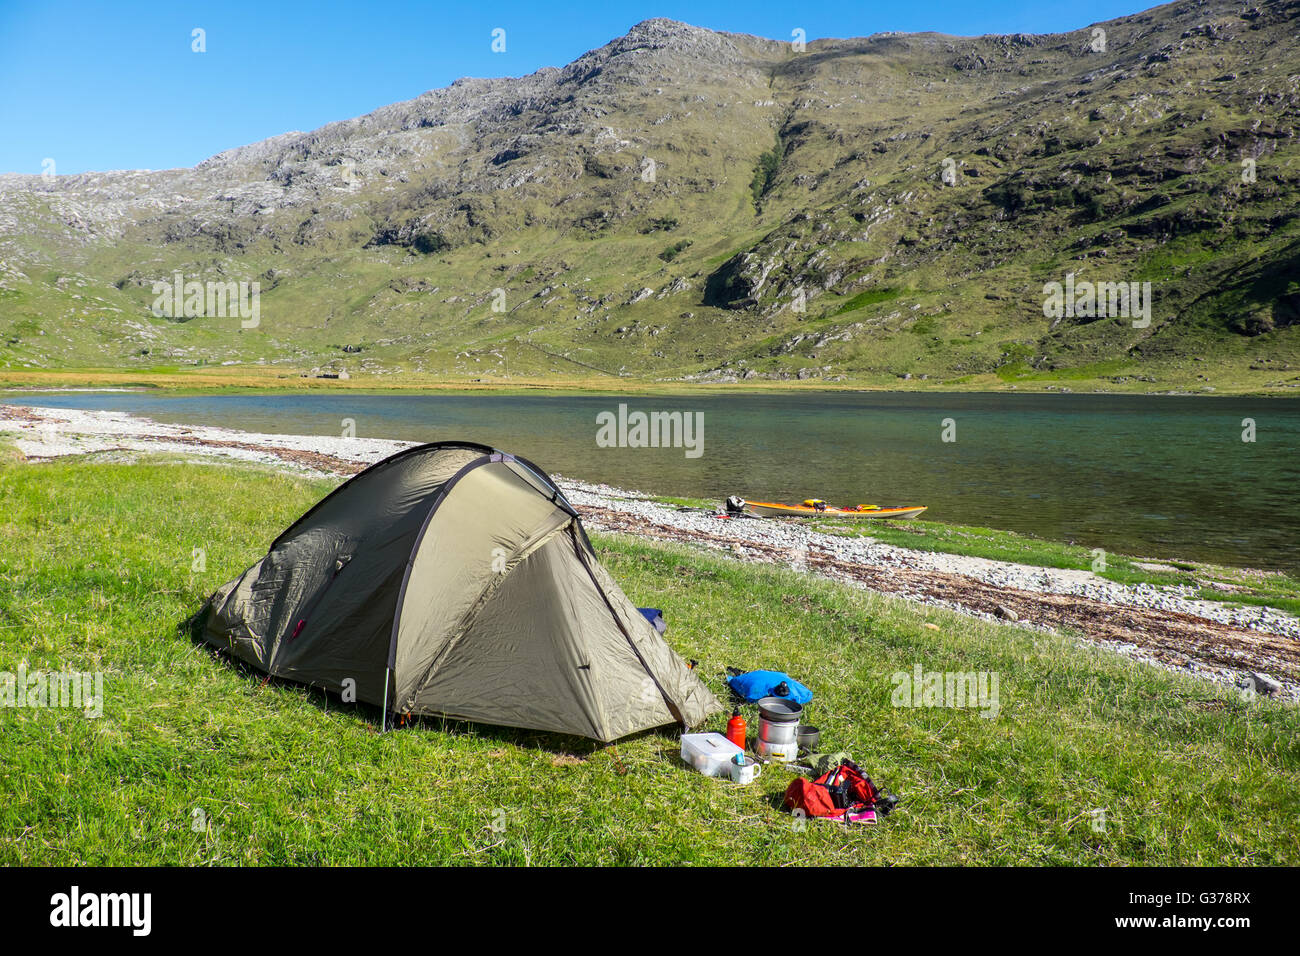 Wild camping at the head of Loch Nevis, Knoydart, Scotland as part of a sea kayaking expeditio - Stock Image